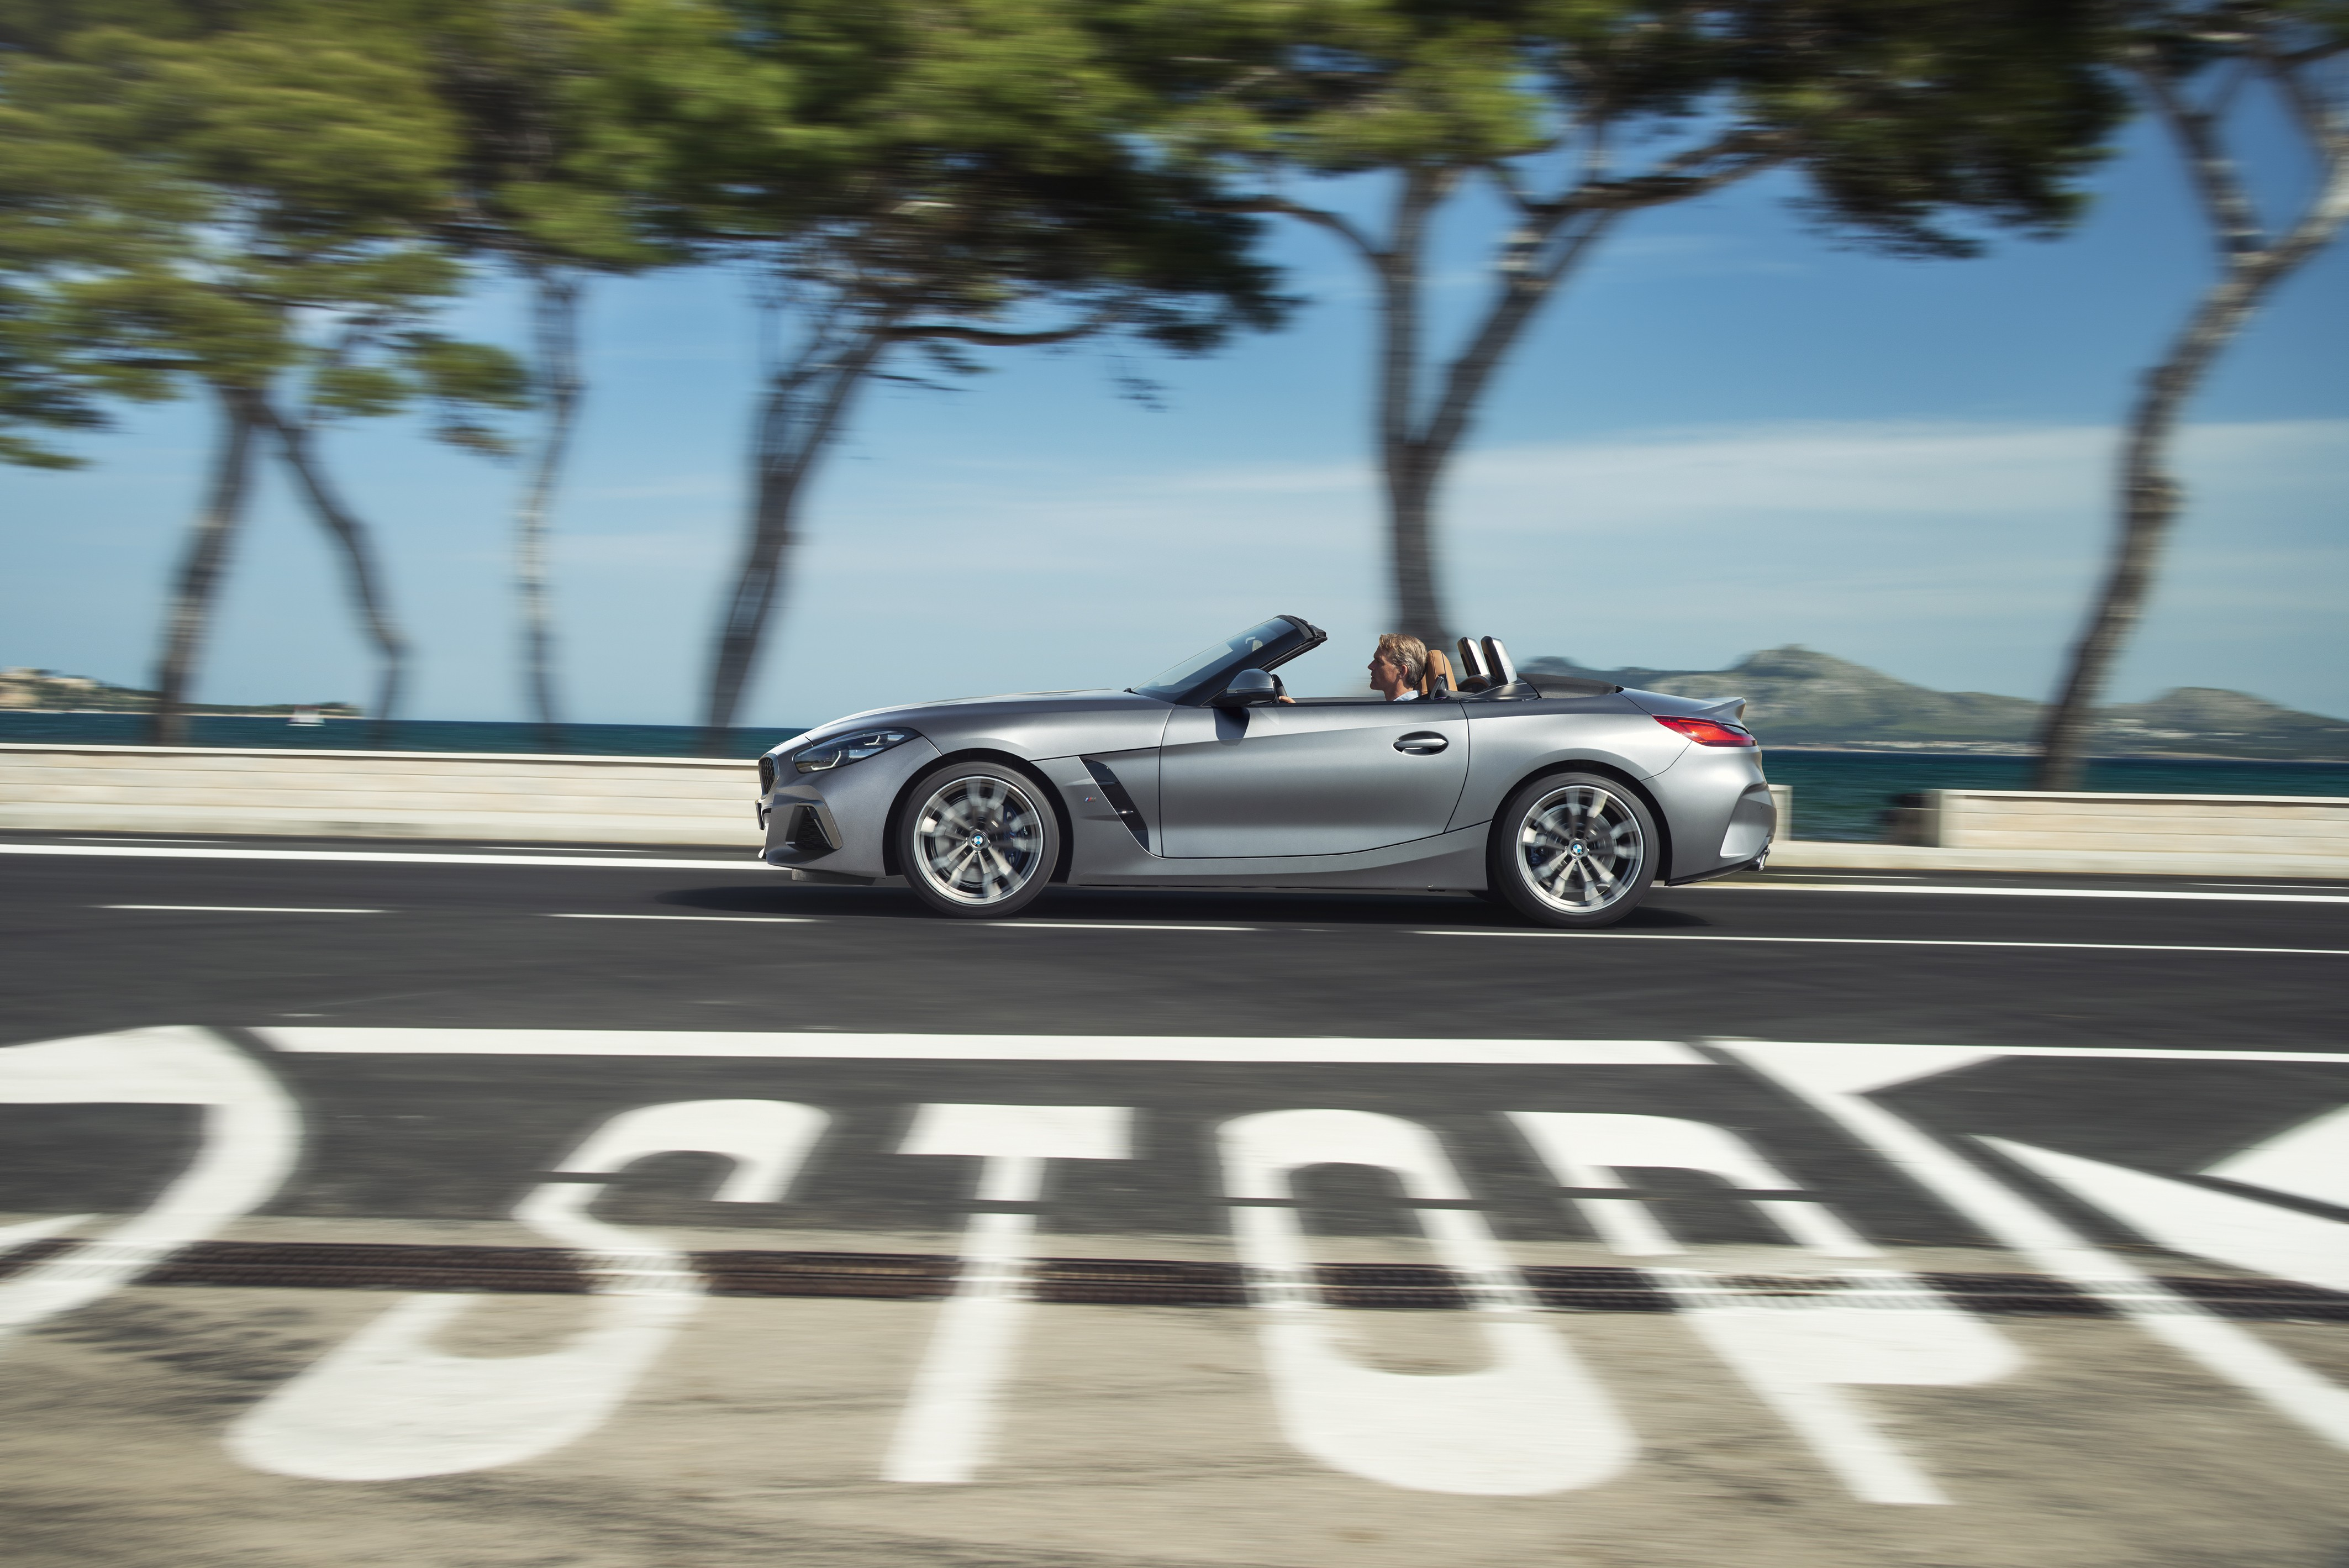 2020 Bmw Z4 Full Specs New Photos Released Ahead Of Paris Debut